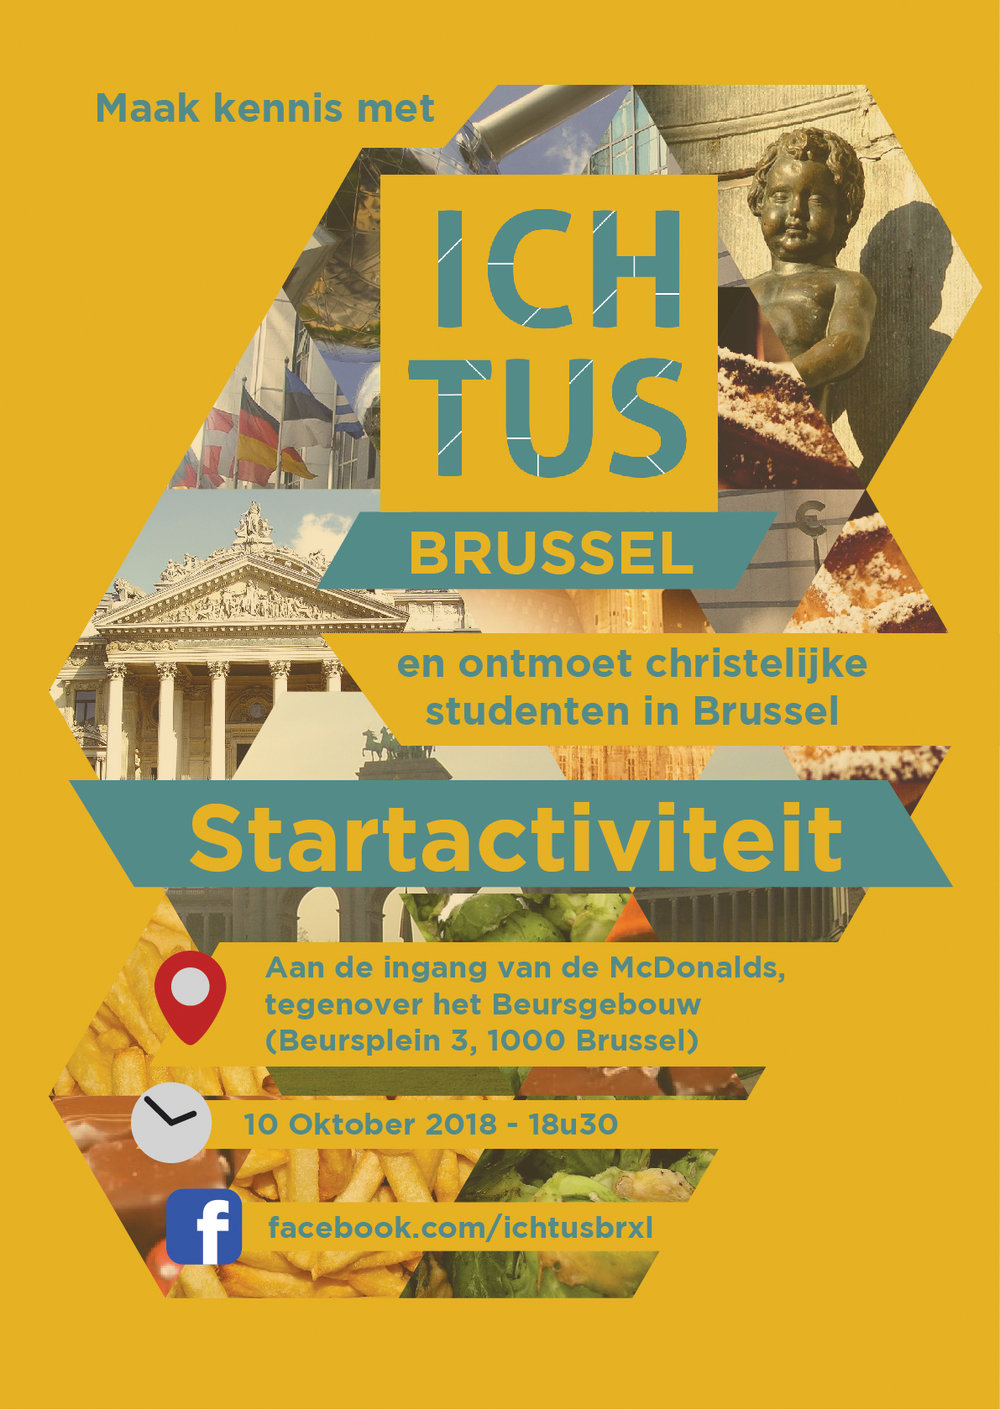 Icthus start activity - Flyer